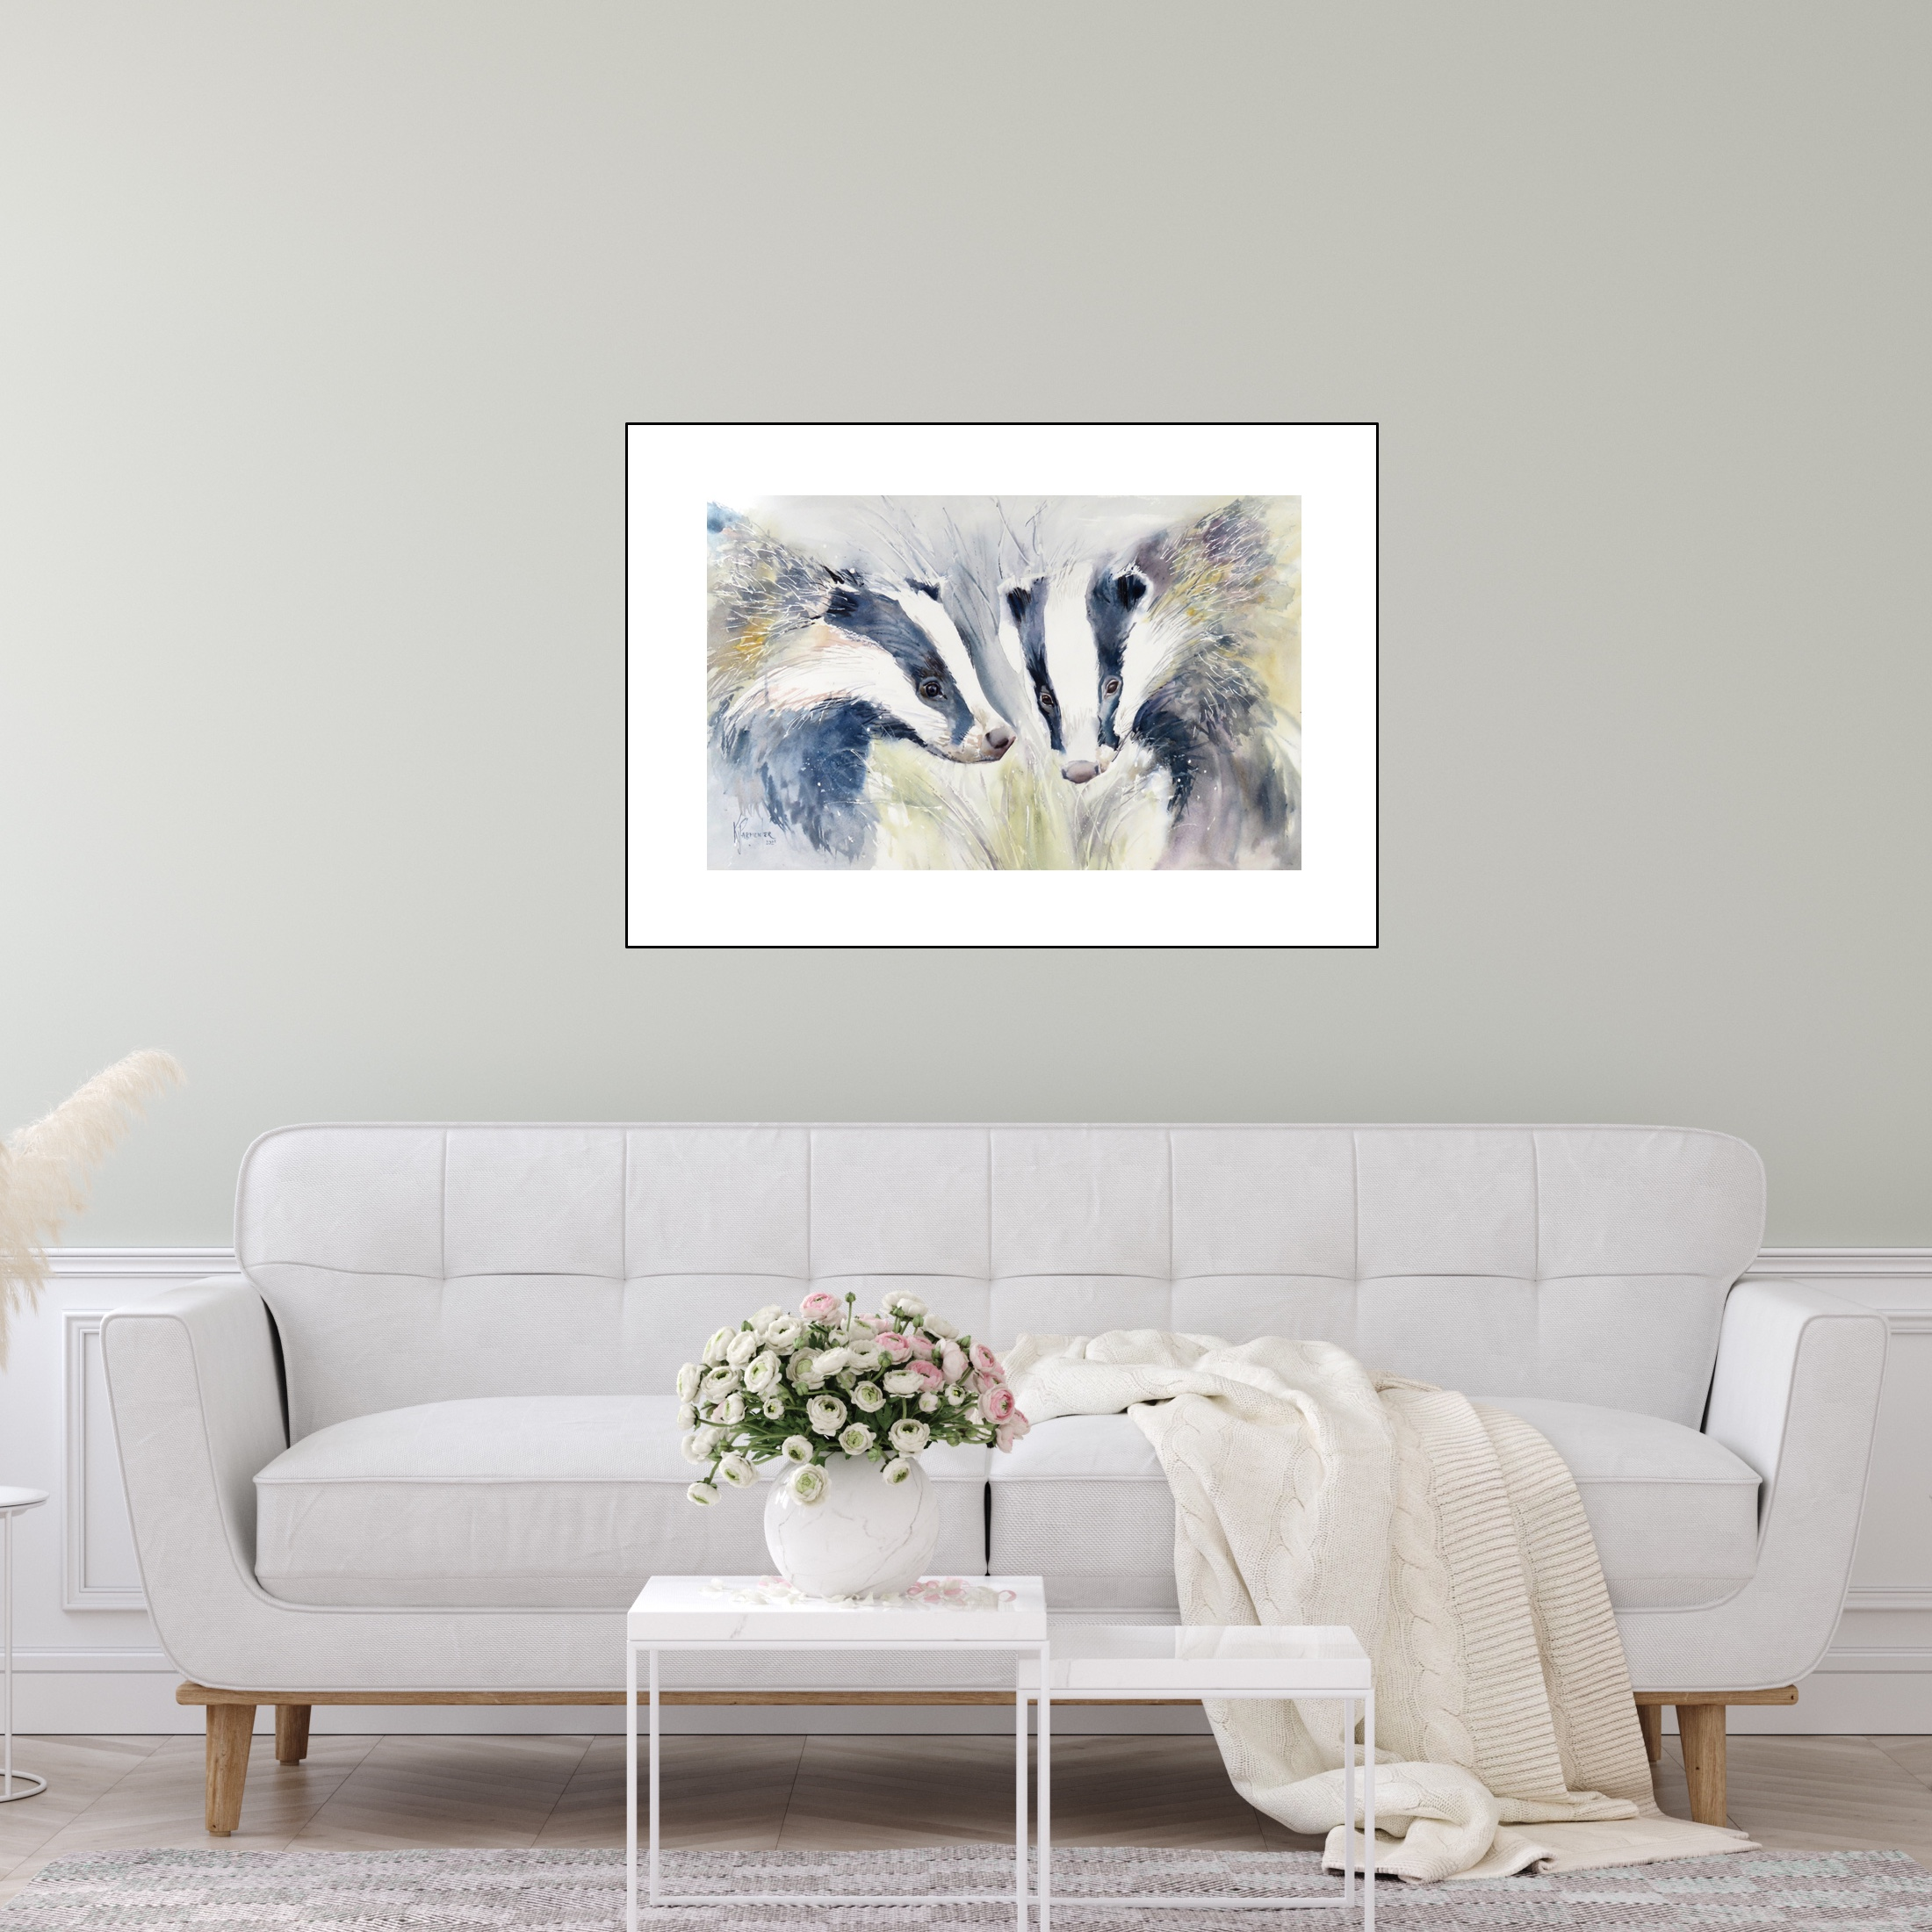 Double Trouble Badgers (Sold)